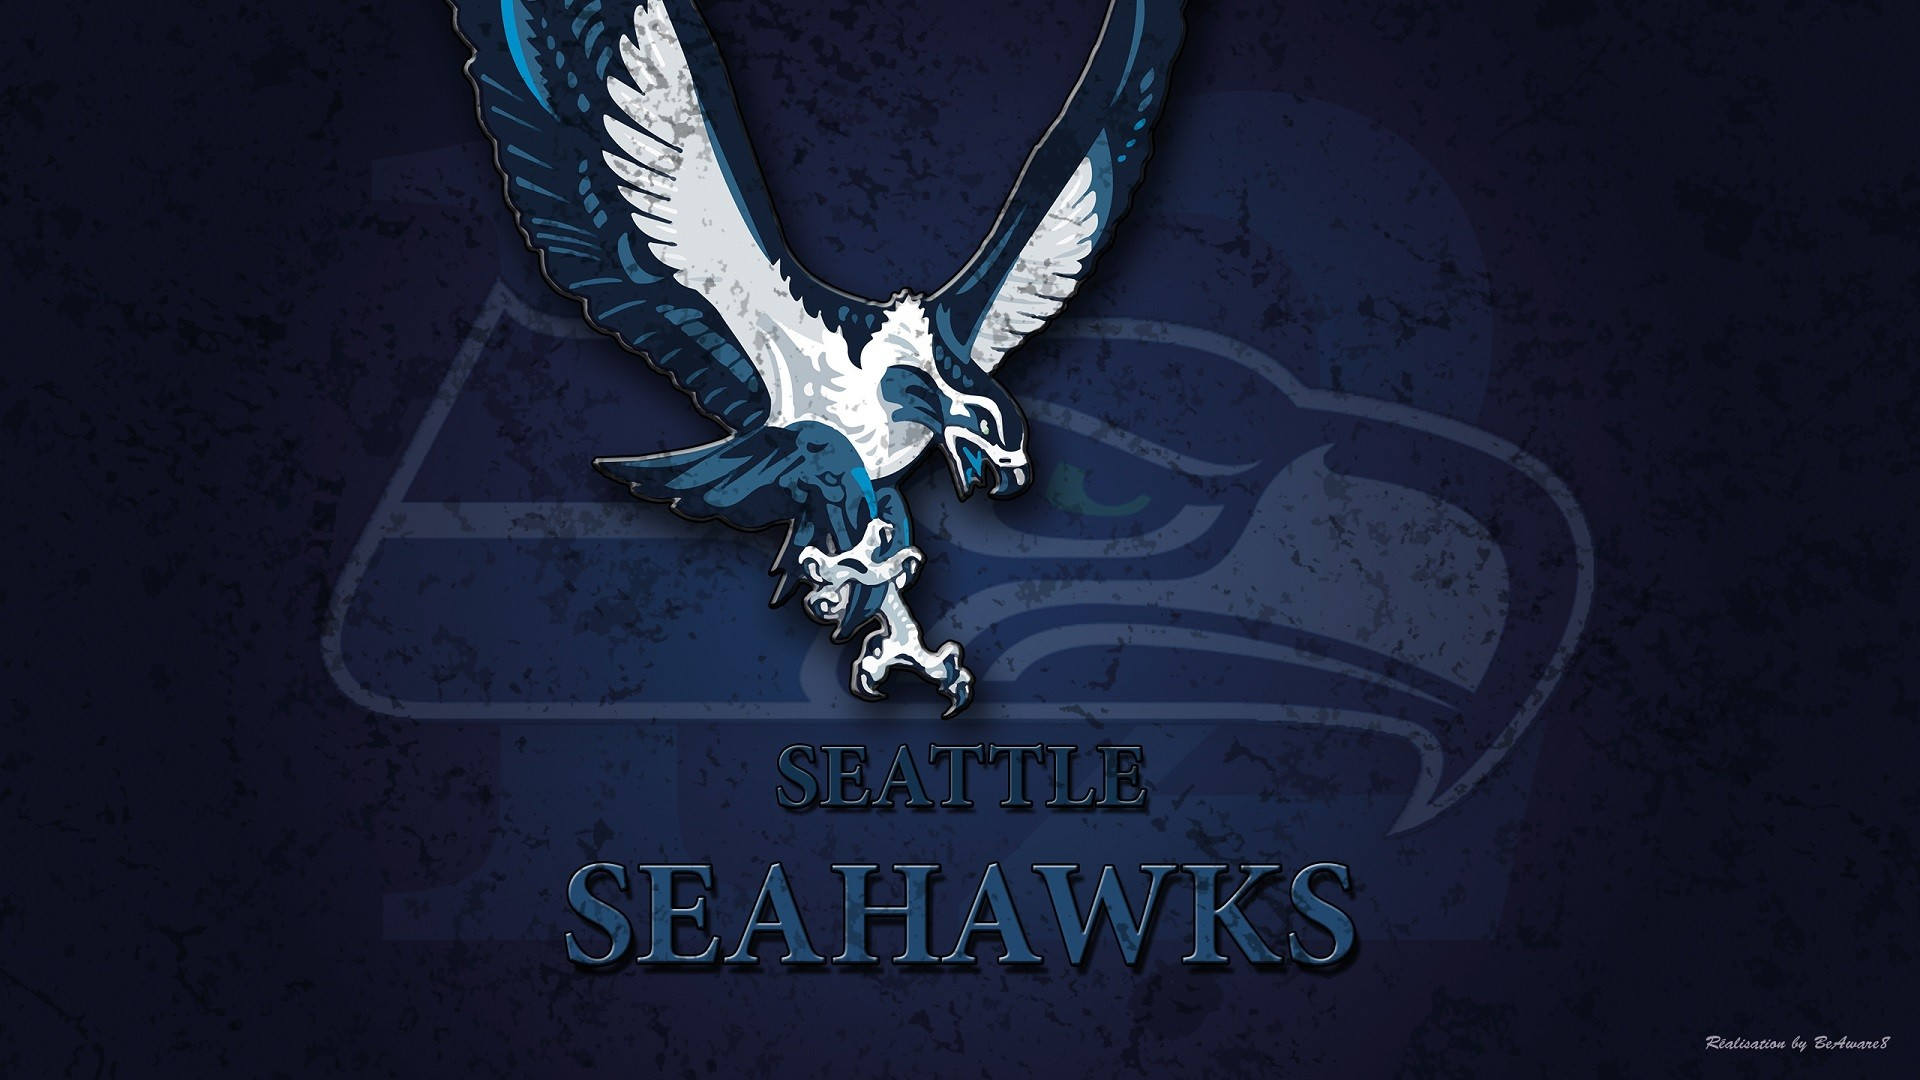 Seattle Seahawks Wallpaper Images (72+